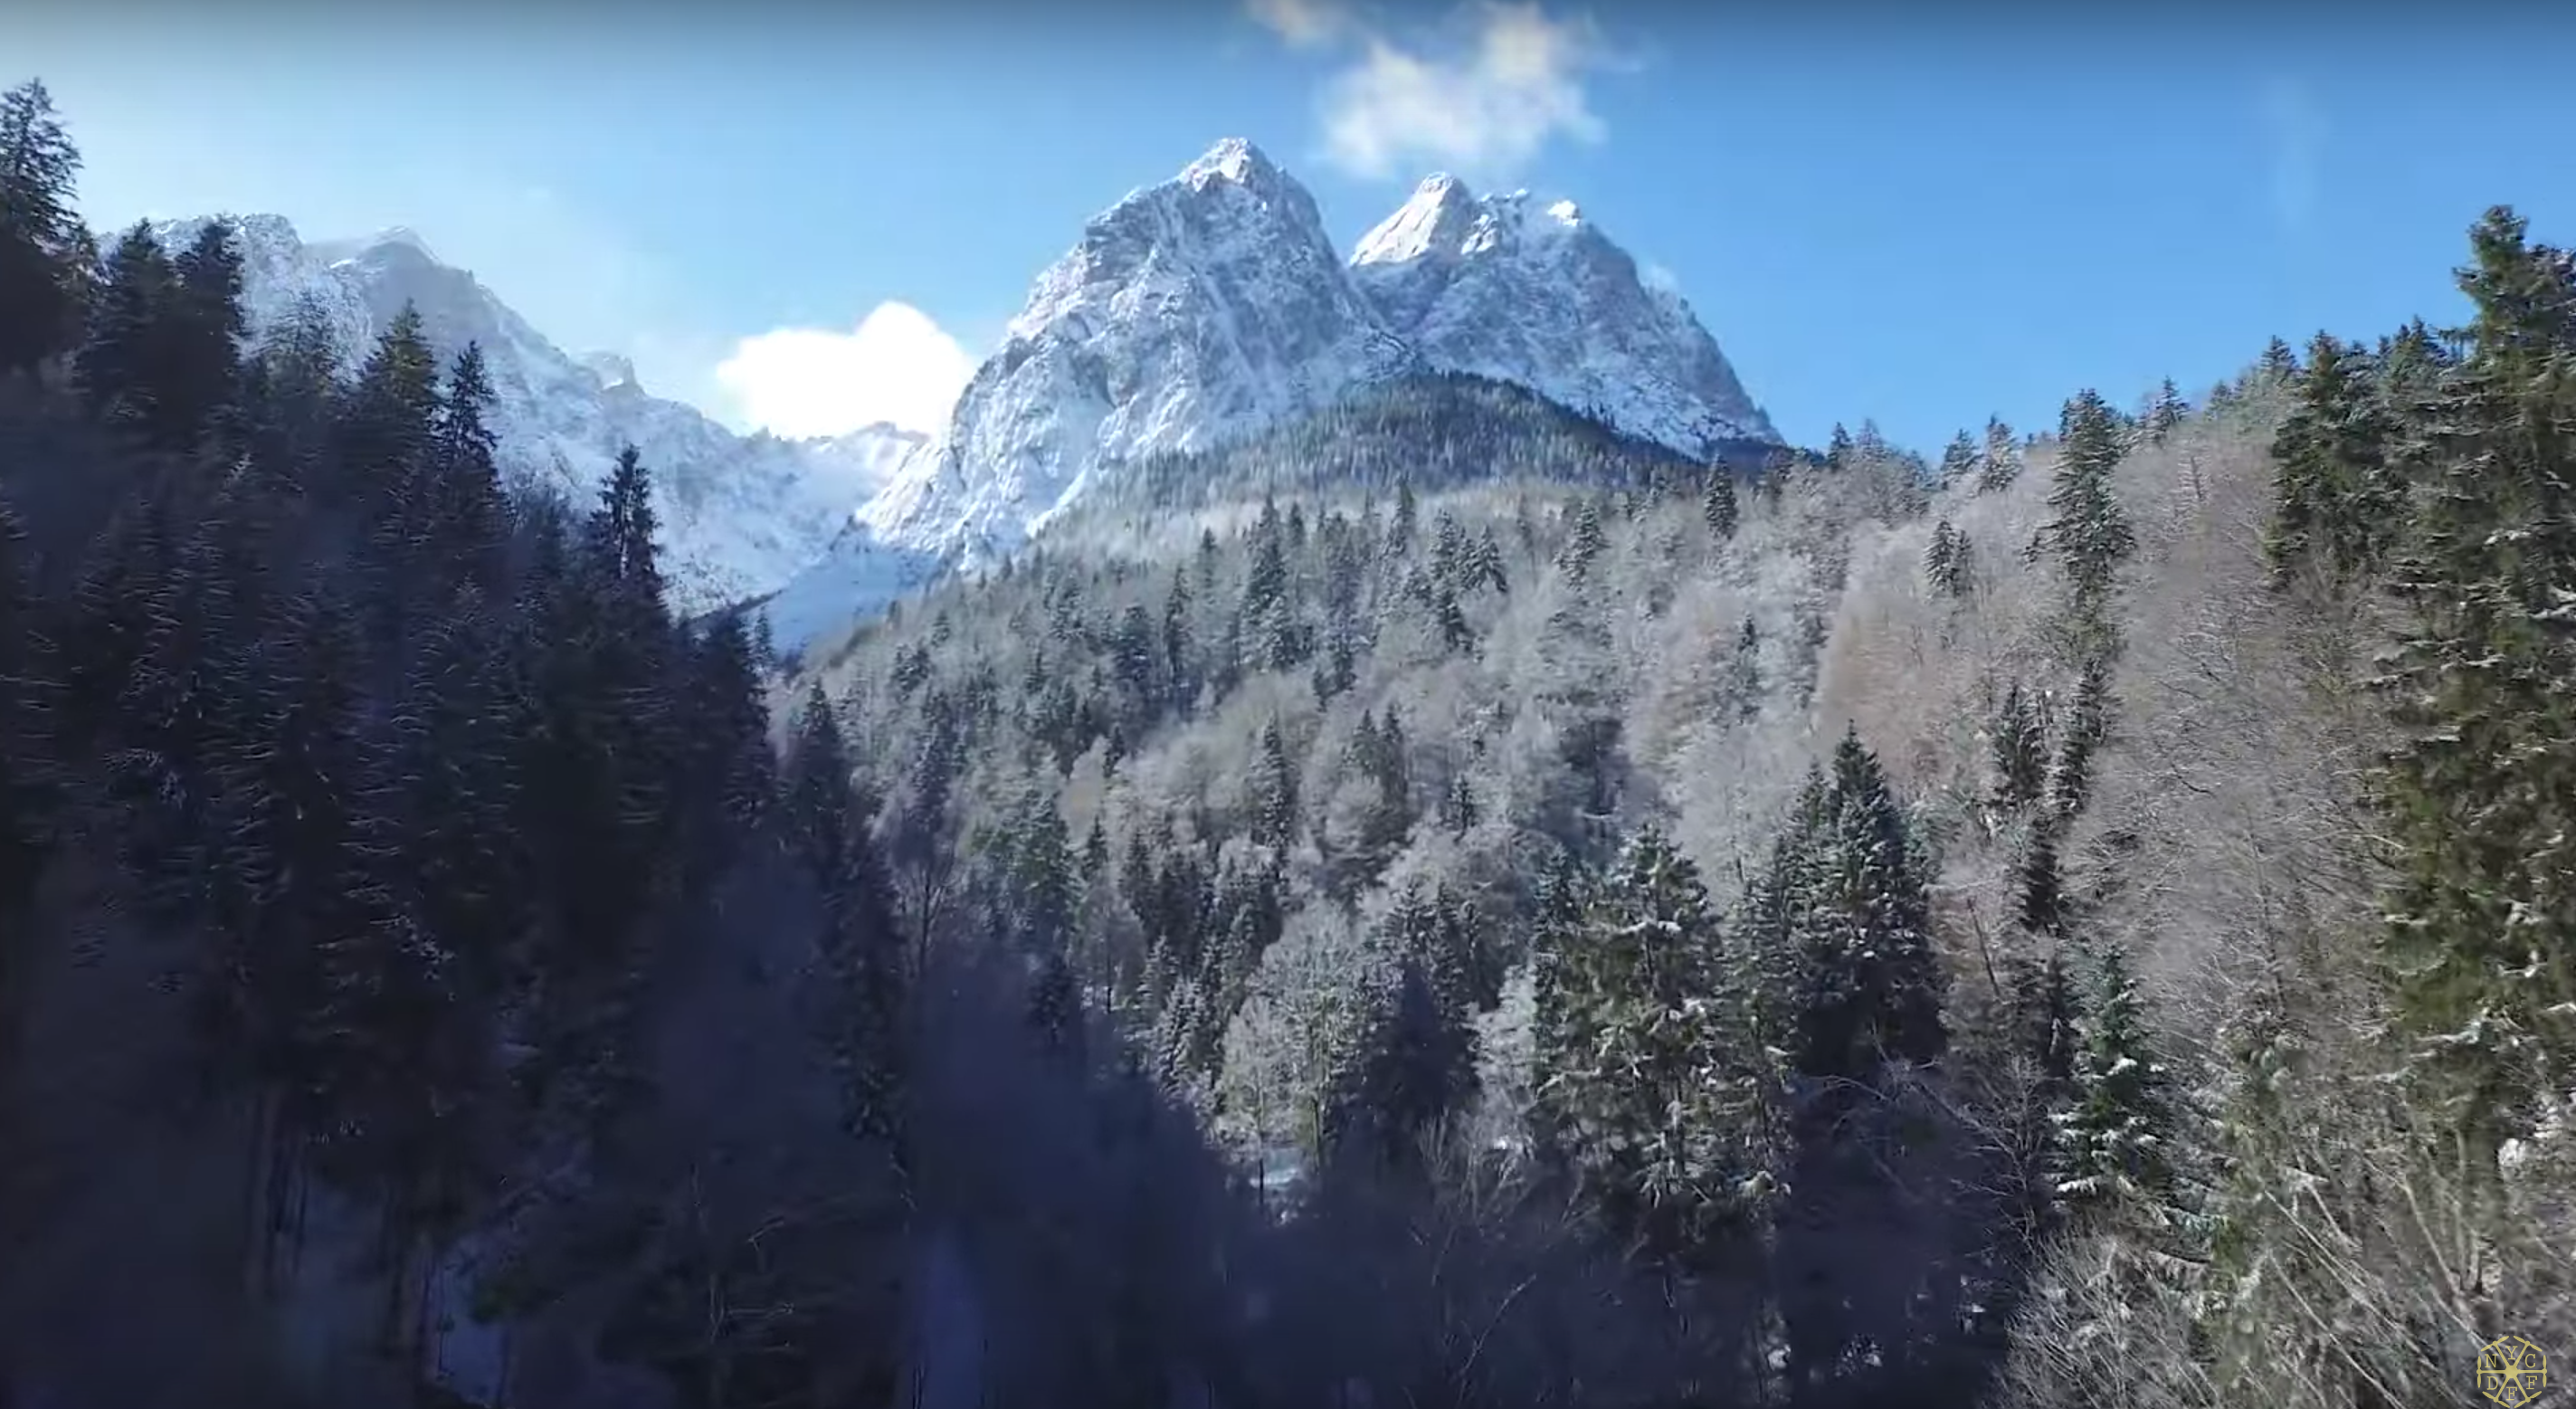 Need drone video inspiration? See the best drone footage of 2016